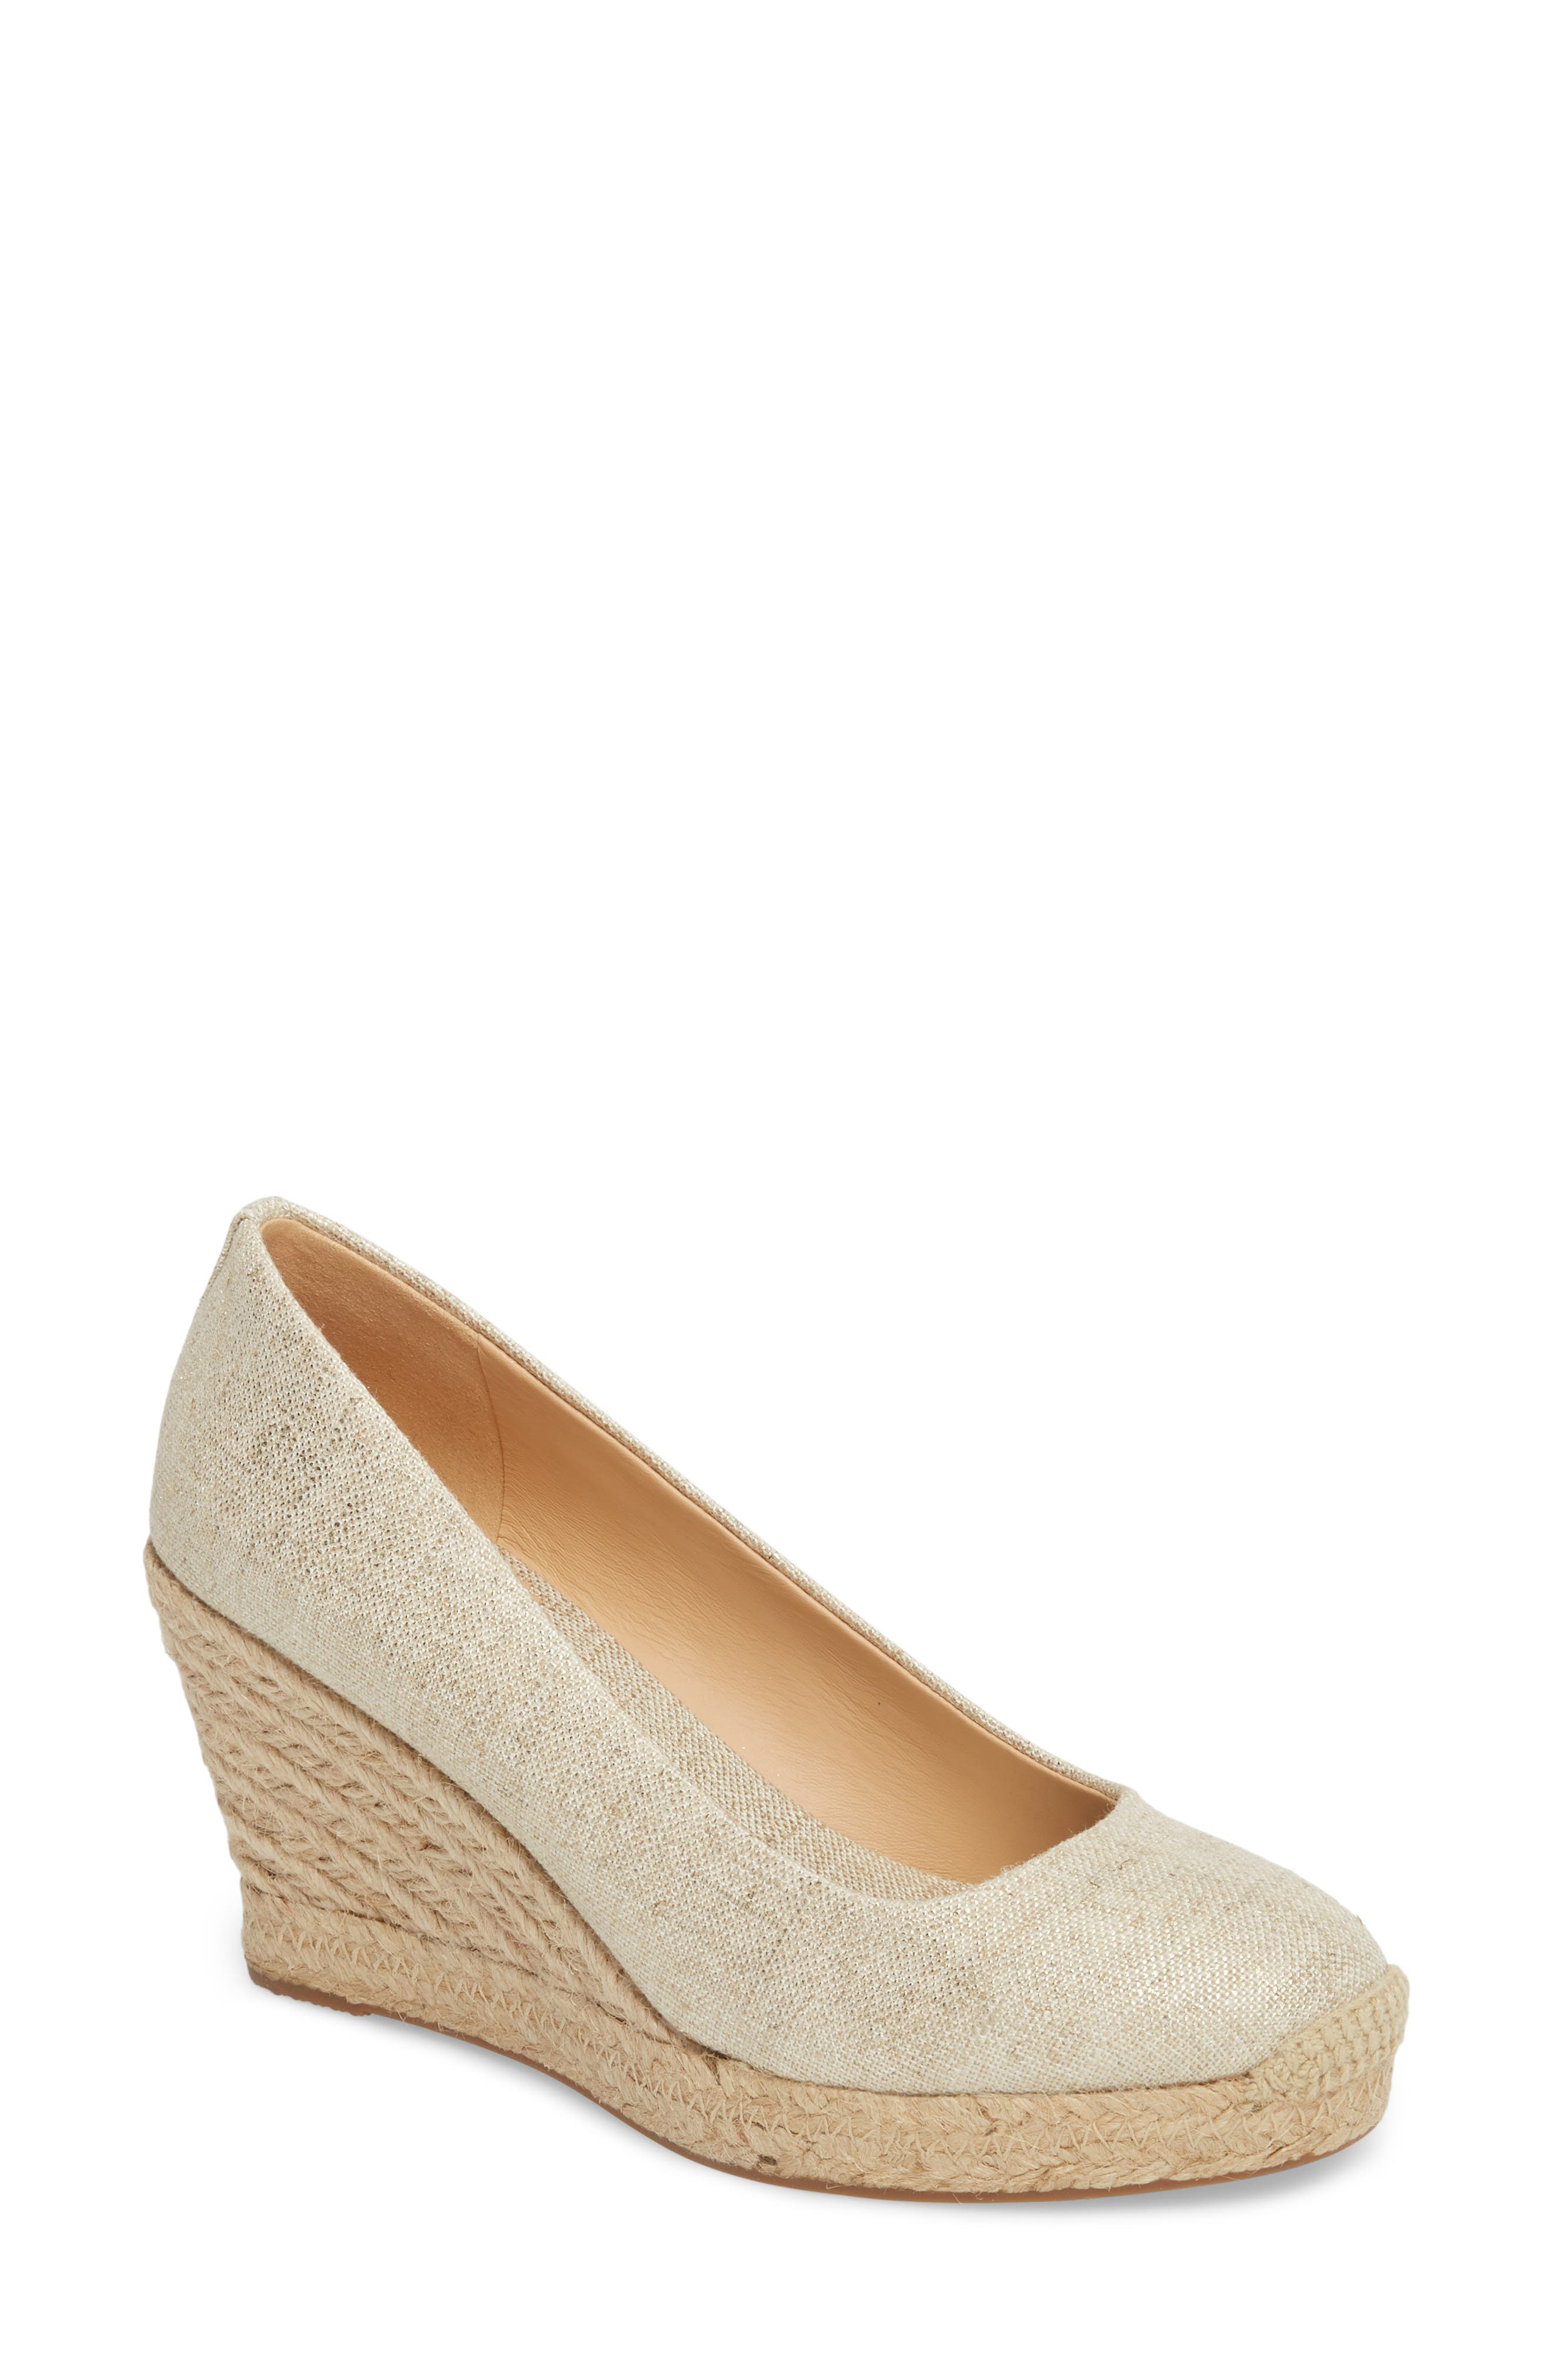 Seville Espadrille Wedge,                             Main thumbnail 1, color,                             710